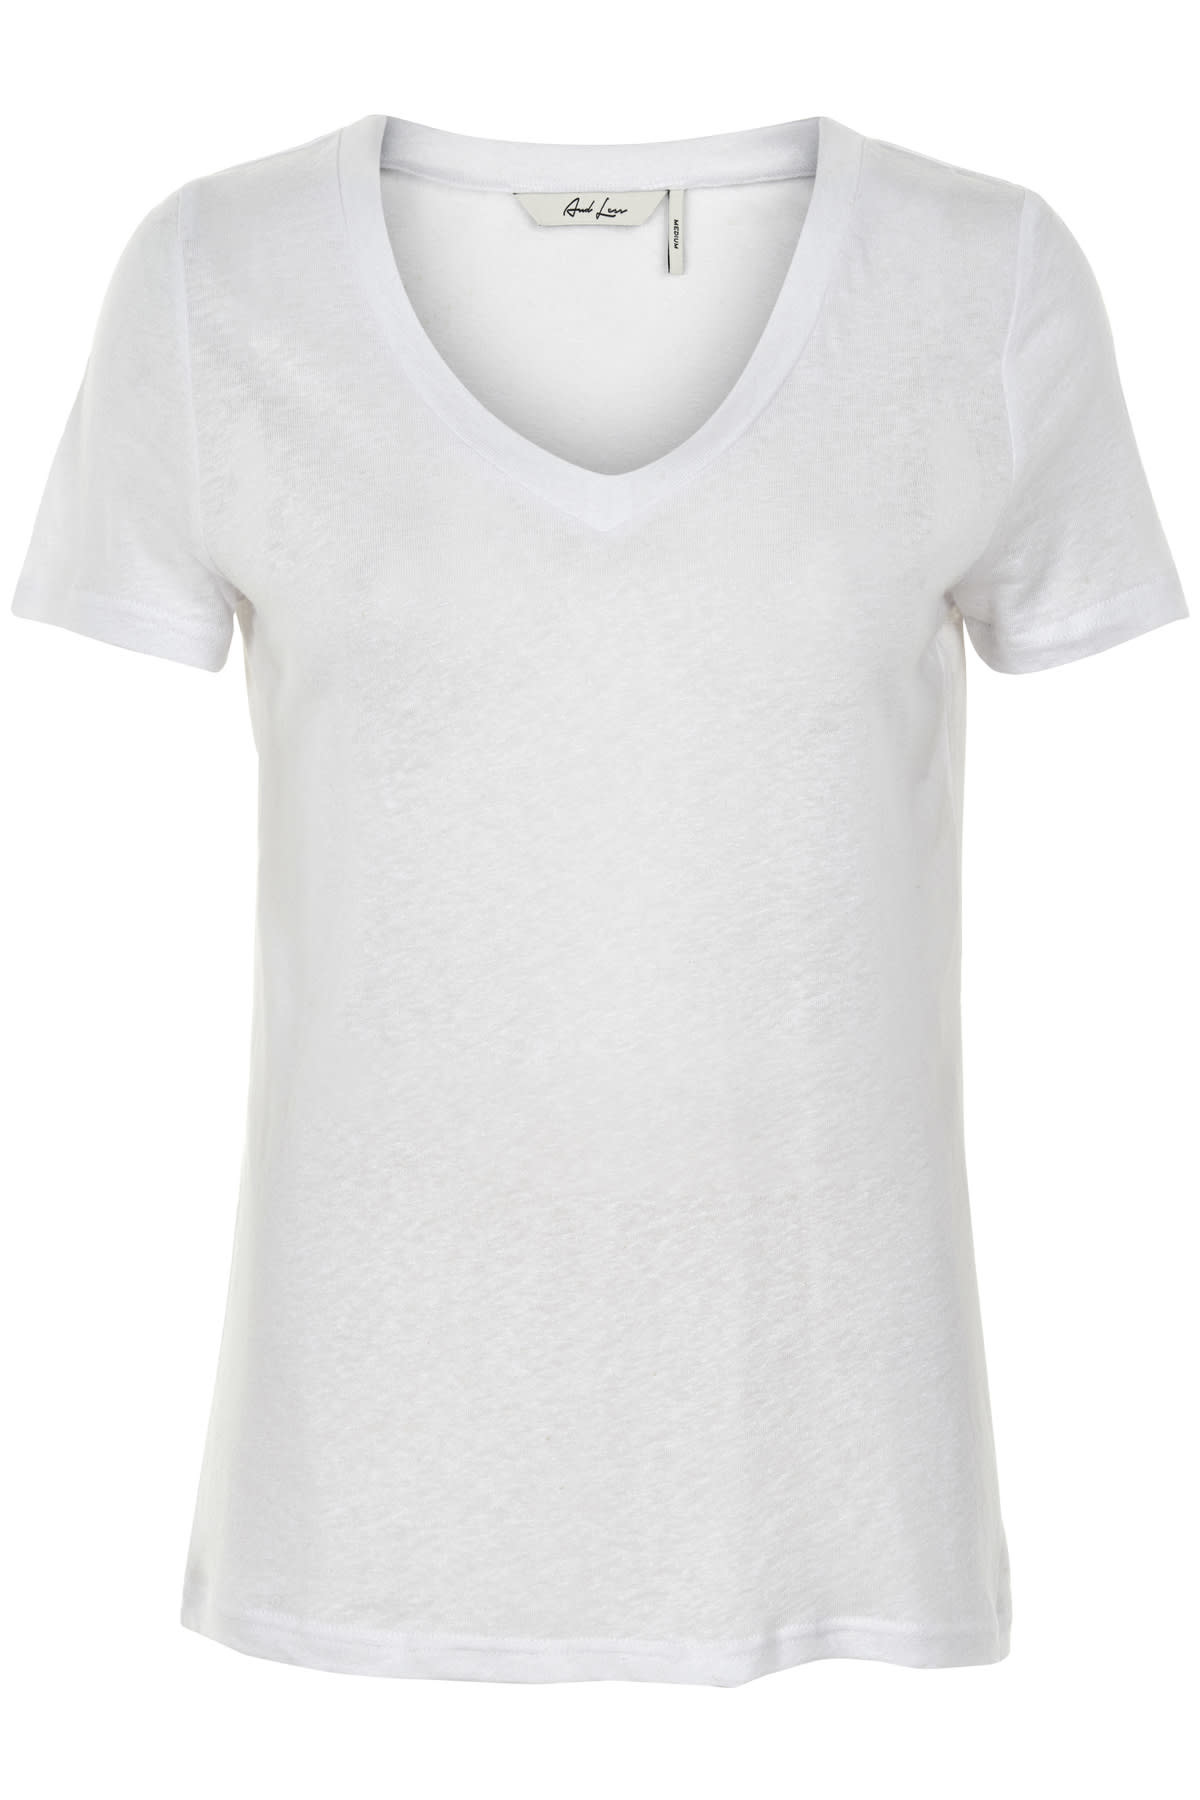 AndLess Orsino Blouse - Sp20 - Wit